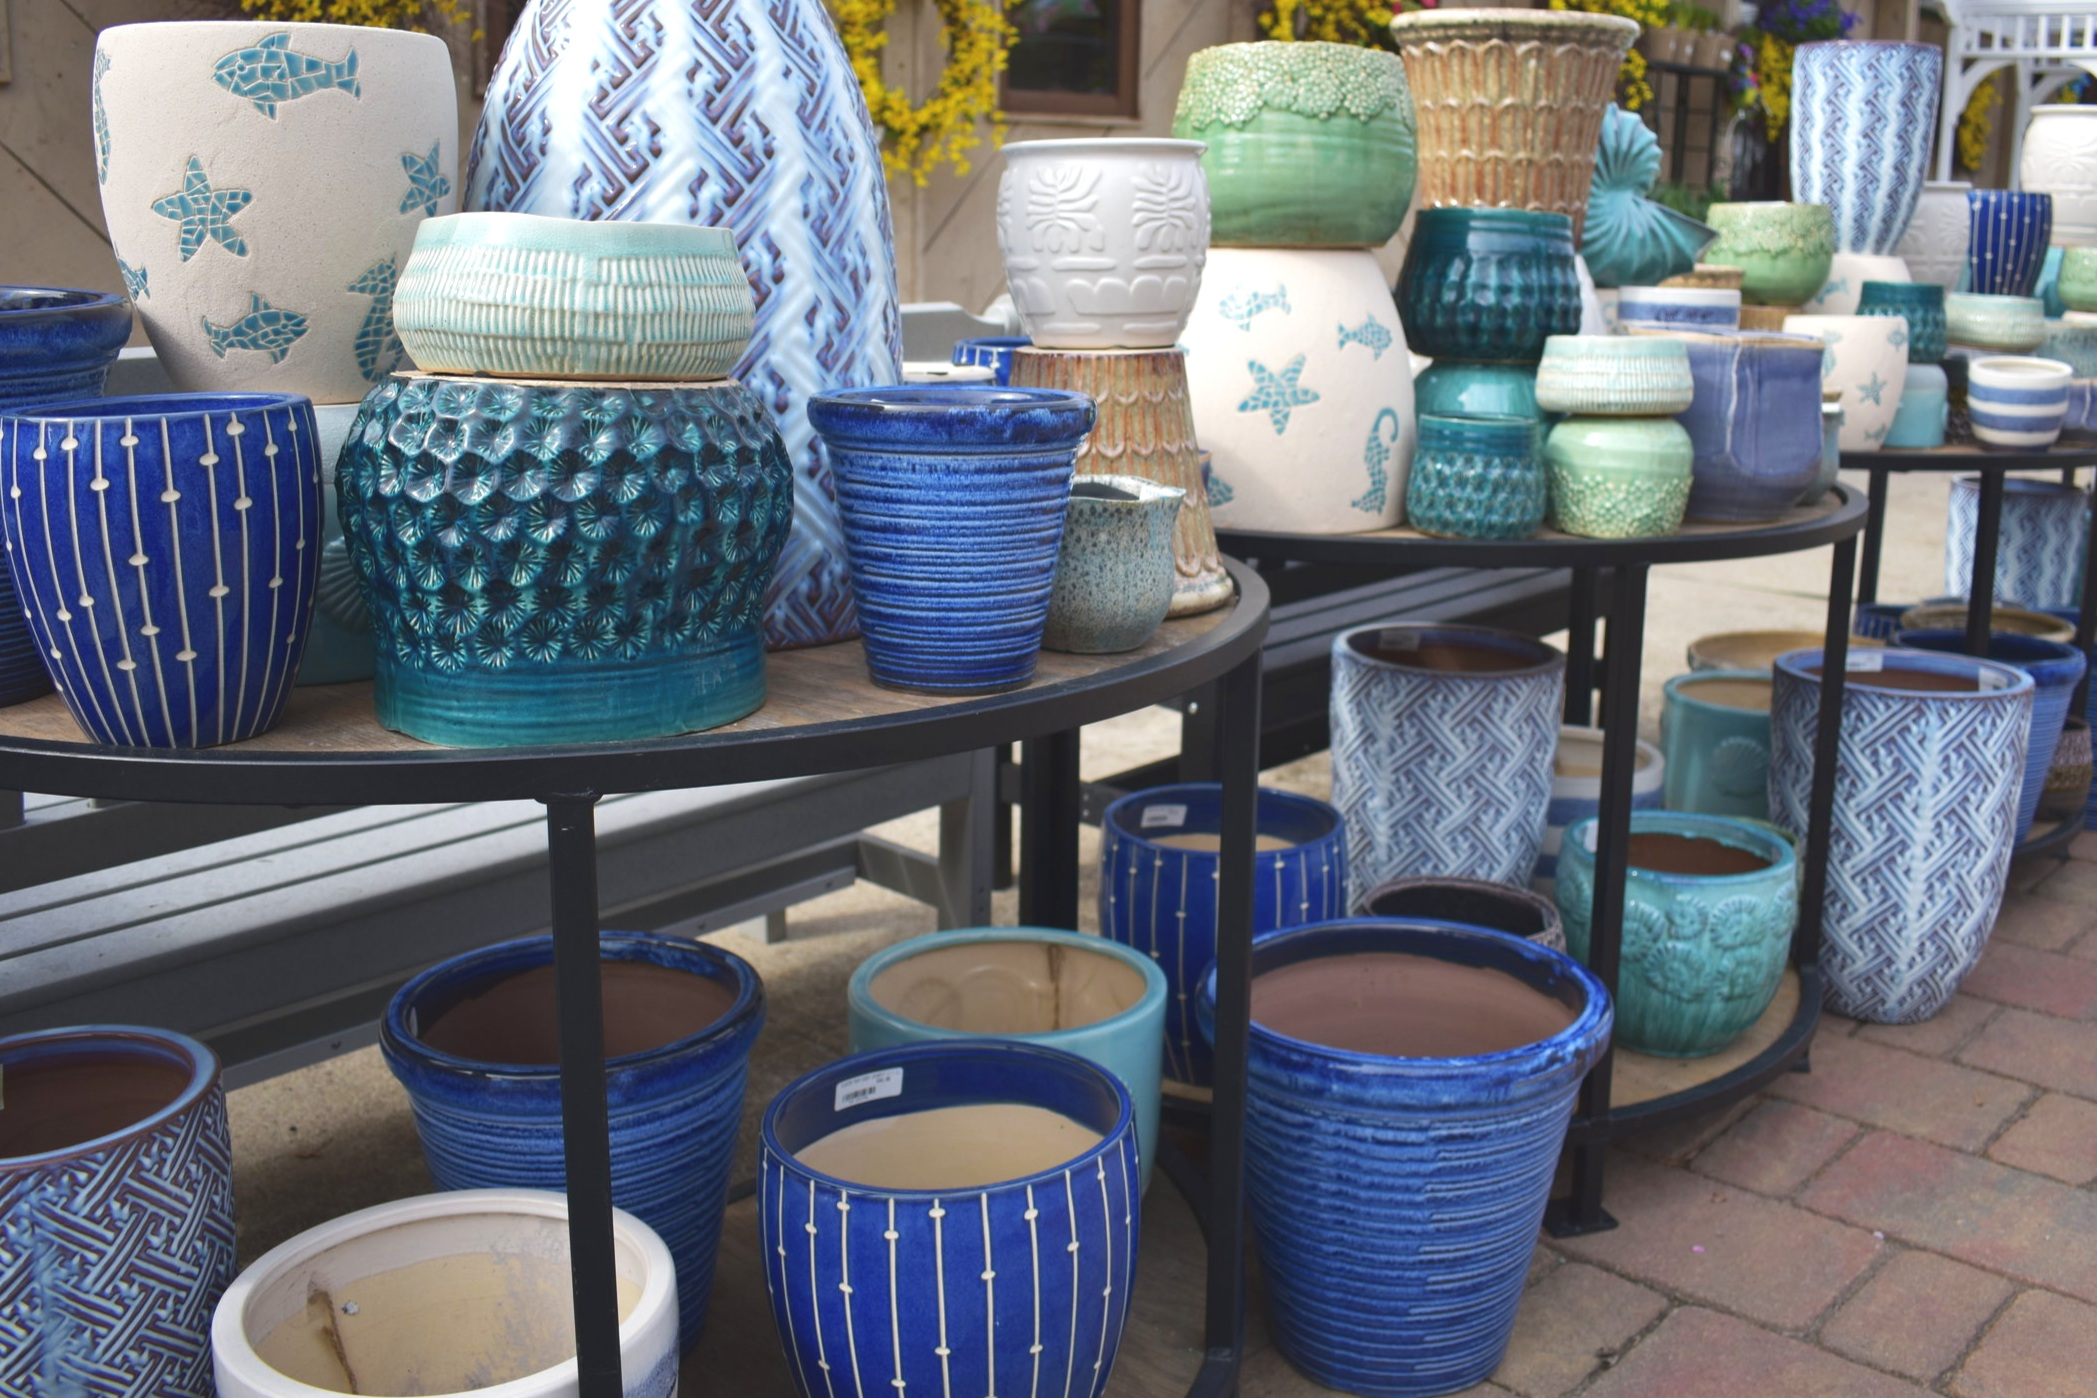 Use fun pottery to add color and texture to your indoor and outdoor plantings.